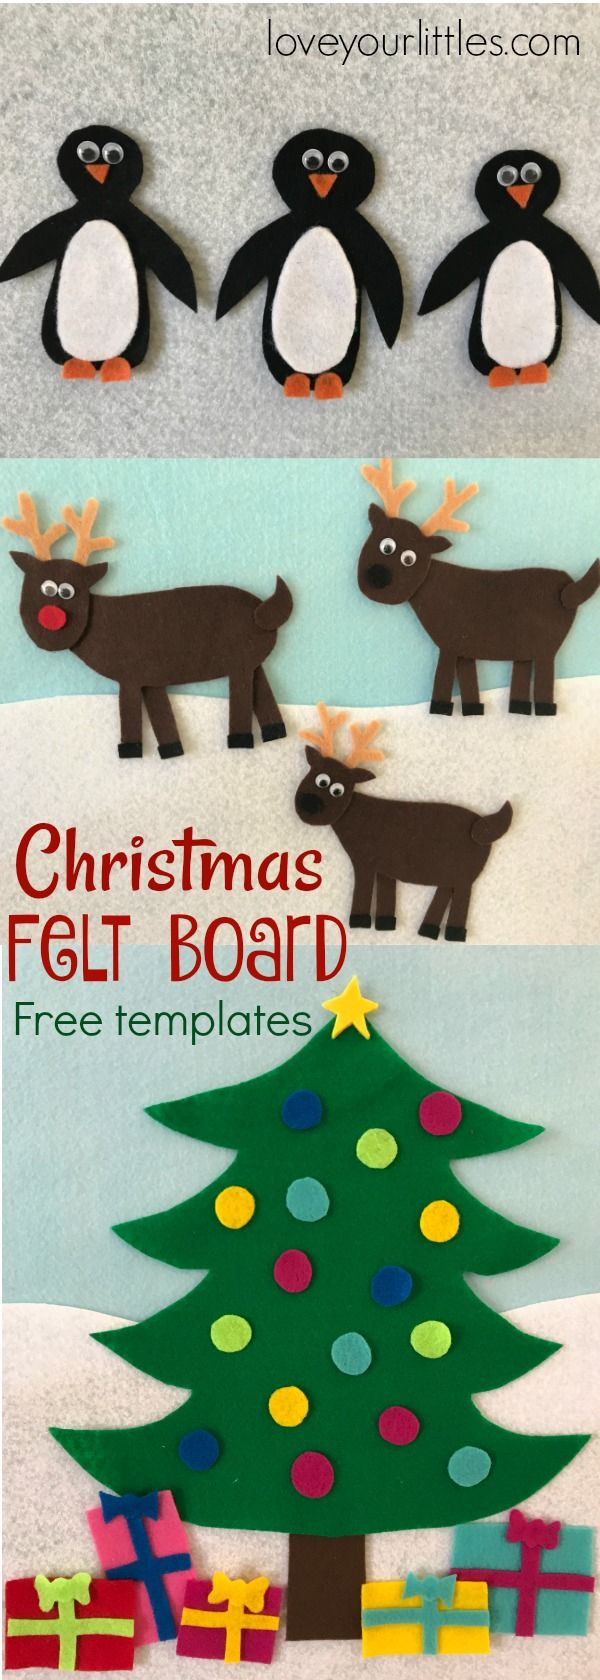 Free downloadable templates. Create your own Christmas themed felt board for kids to play with all month long!